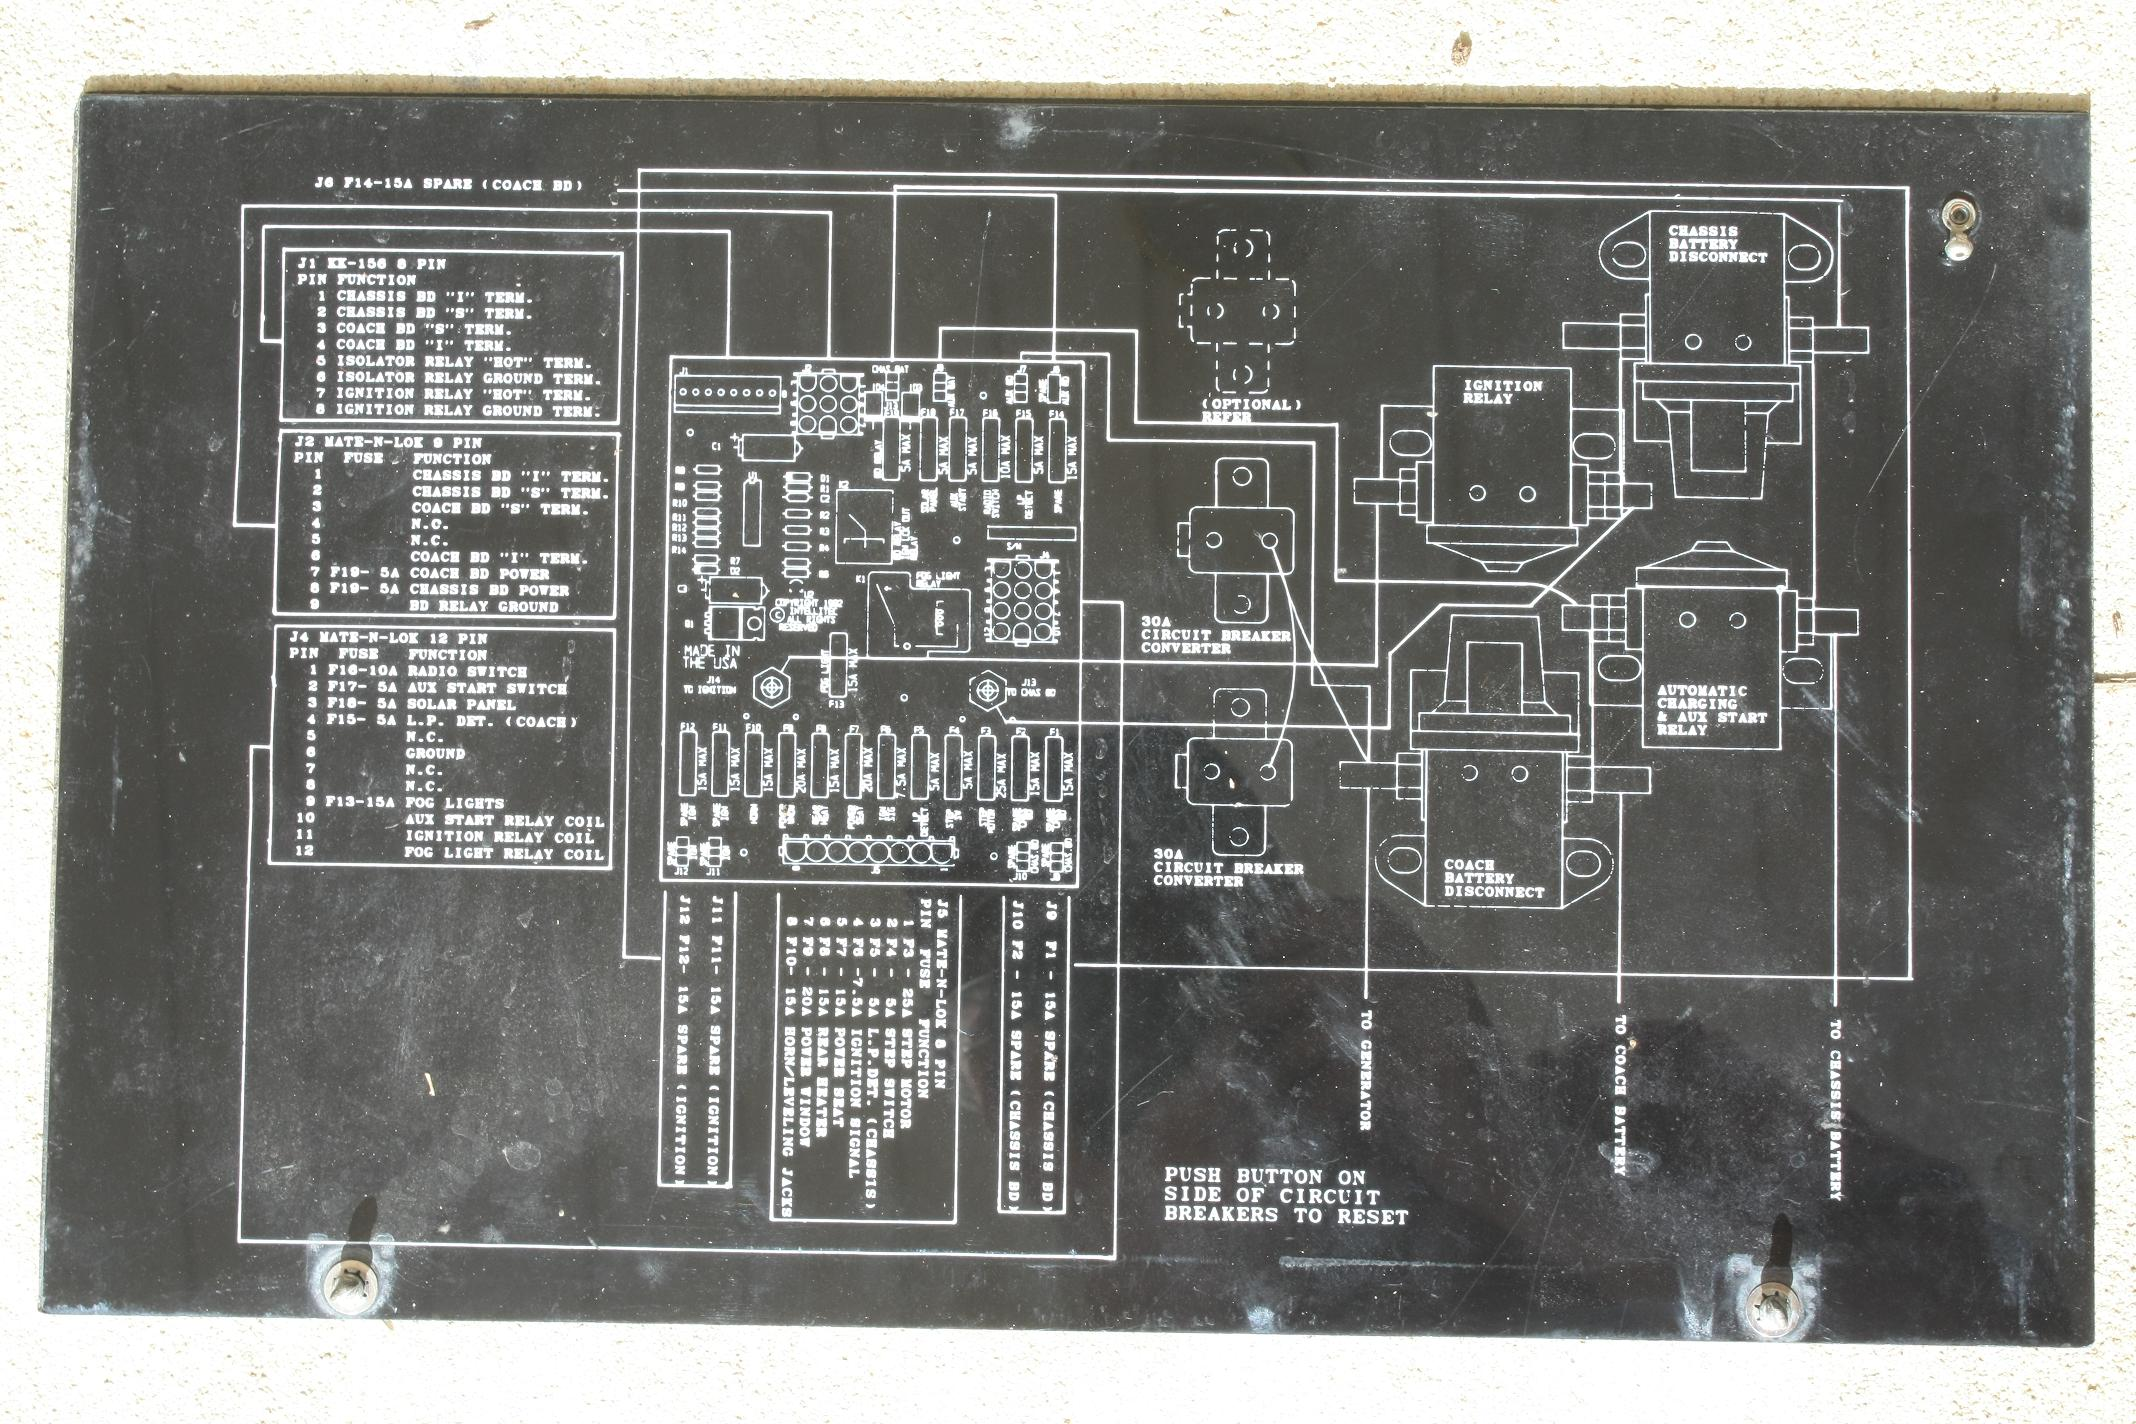 1999 fleetwood rounder wiring diagram - Wiring Diagram